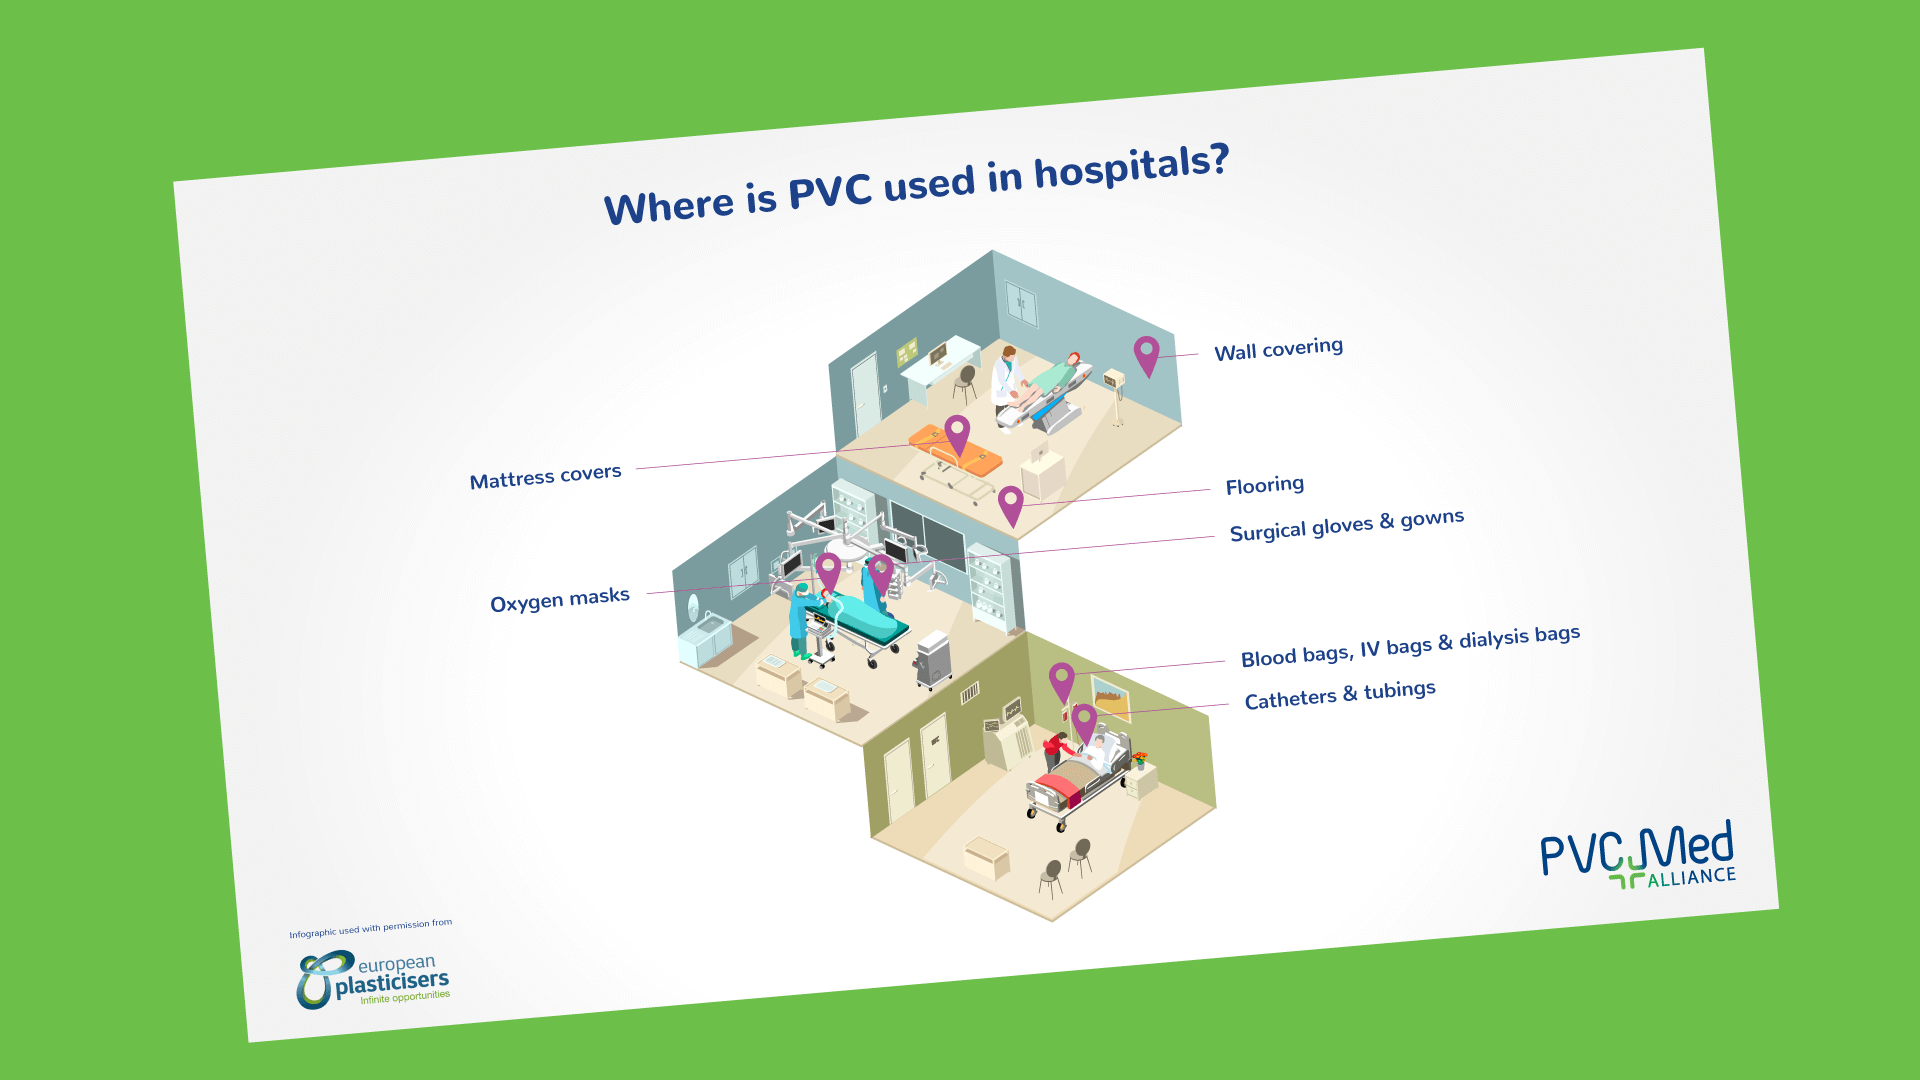 where-is-pvc-used-in-hospitals_bg_green_1920x1080